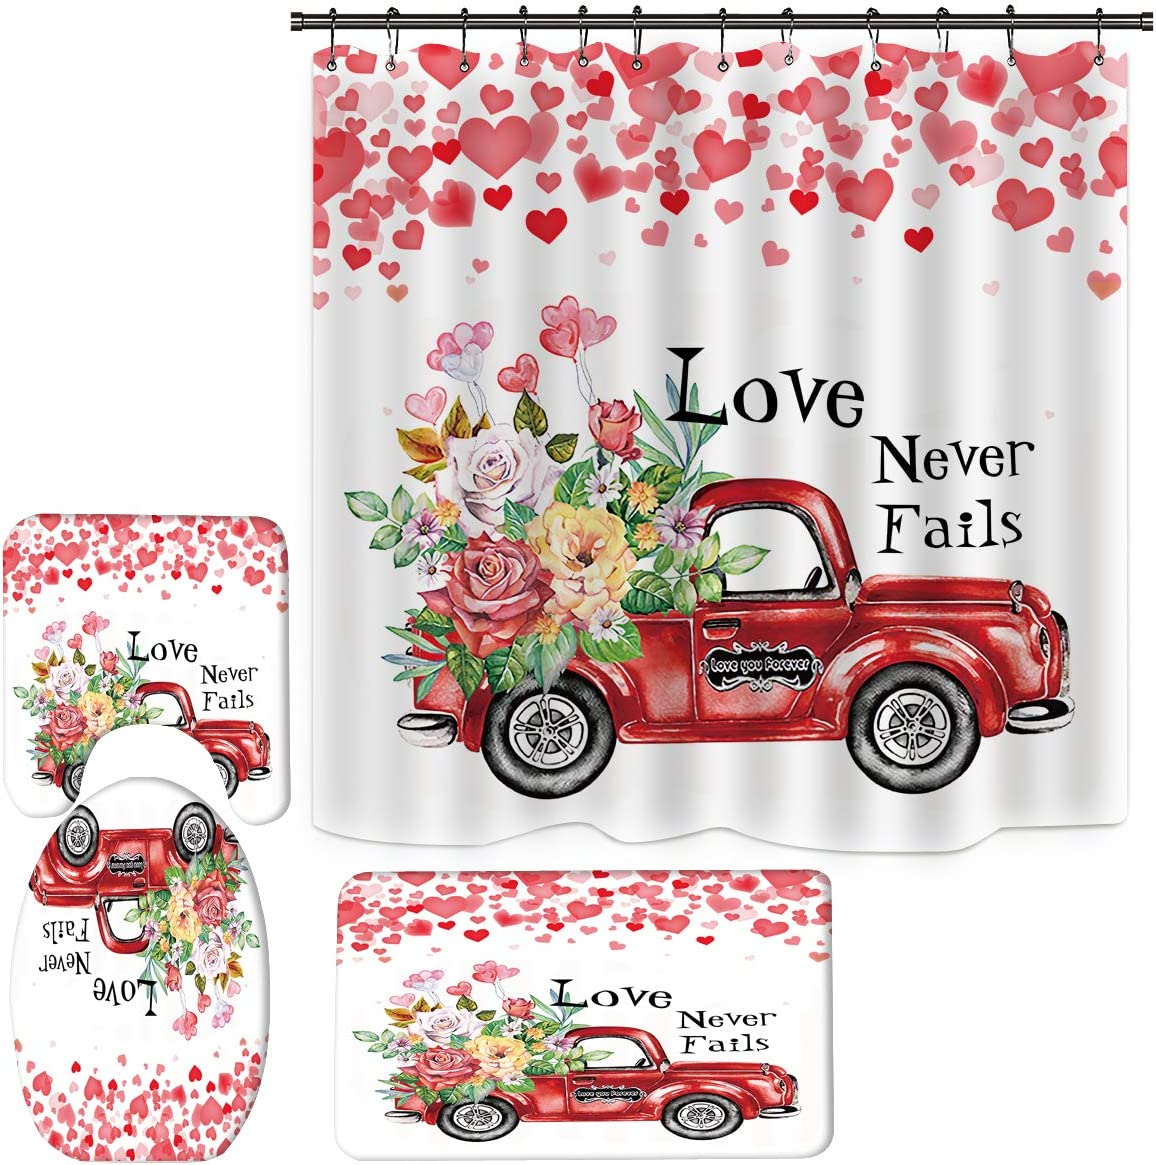 Valentines Shower Curtain for Bathroom, Red Truck Rose Shower Curtain for Bathroom Decor Sets with Bath Rugs, Romantic Valentine Day Bathroom with Non-Slip Rugs and Mats Set (V6)